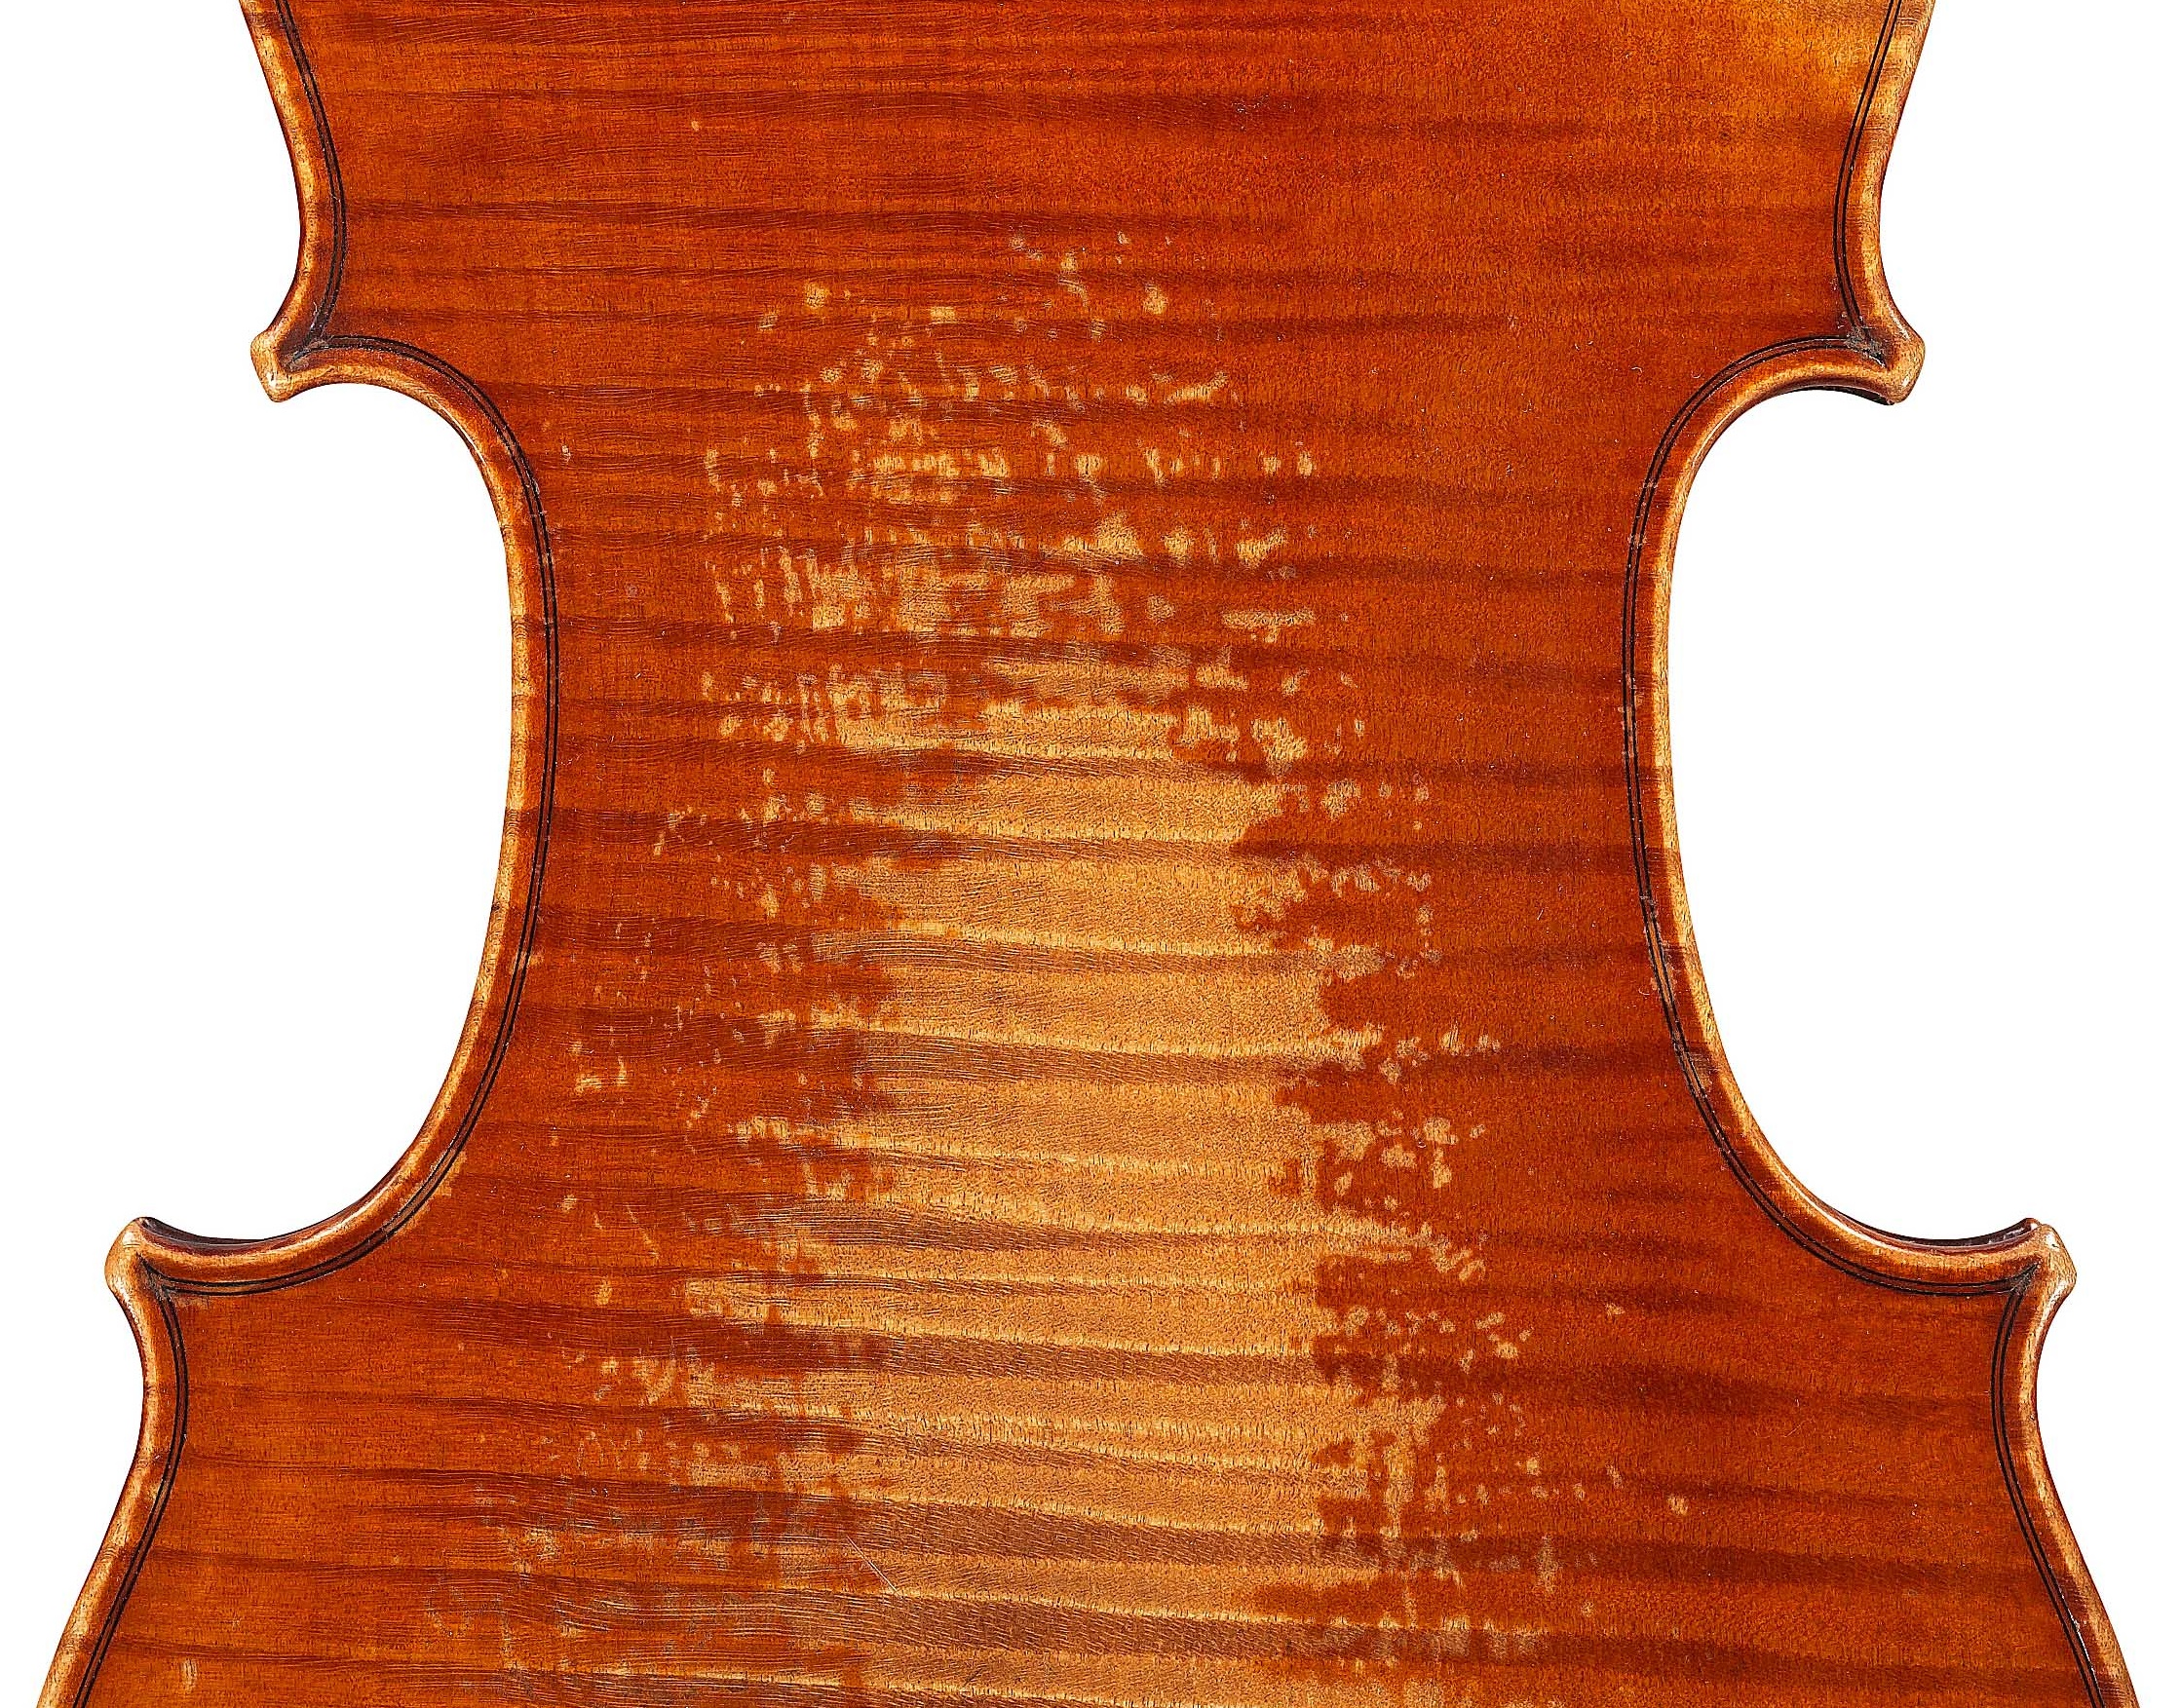 Detail of the ex-Karrman viola by JB Vuillaume, dated 1859 at Ingles and Hayday